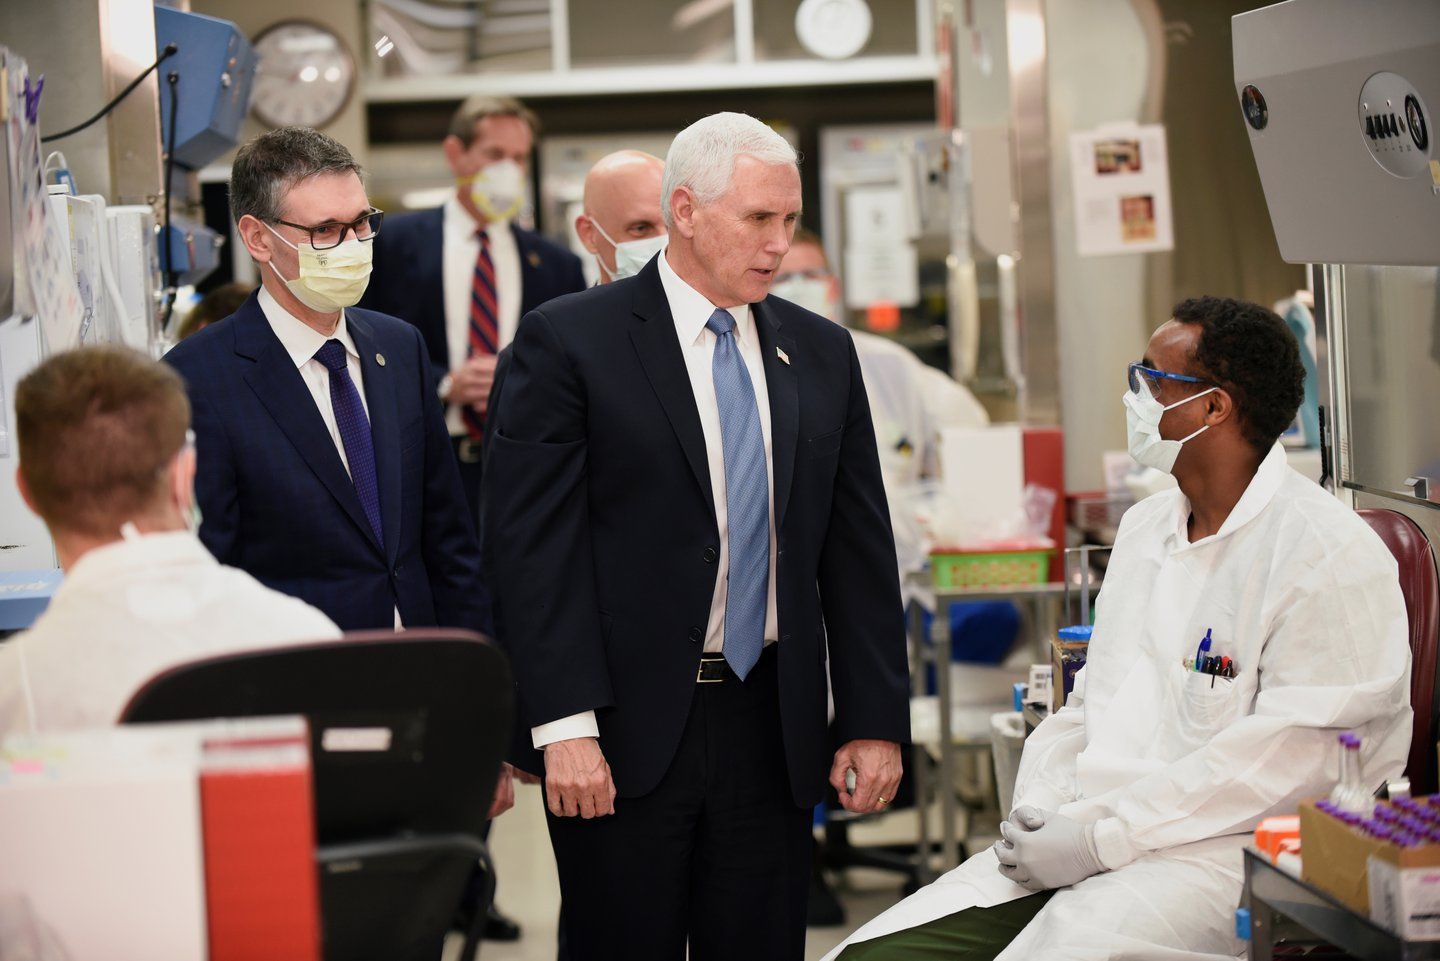 Pence VOA_chilling